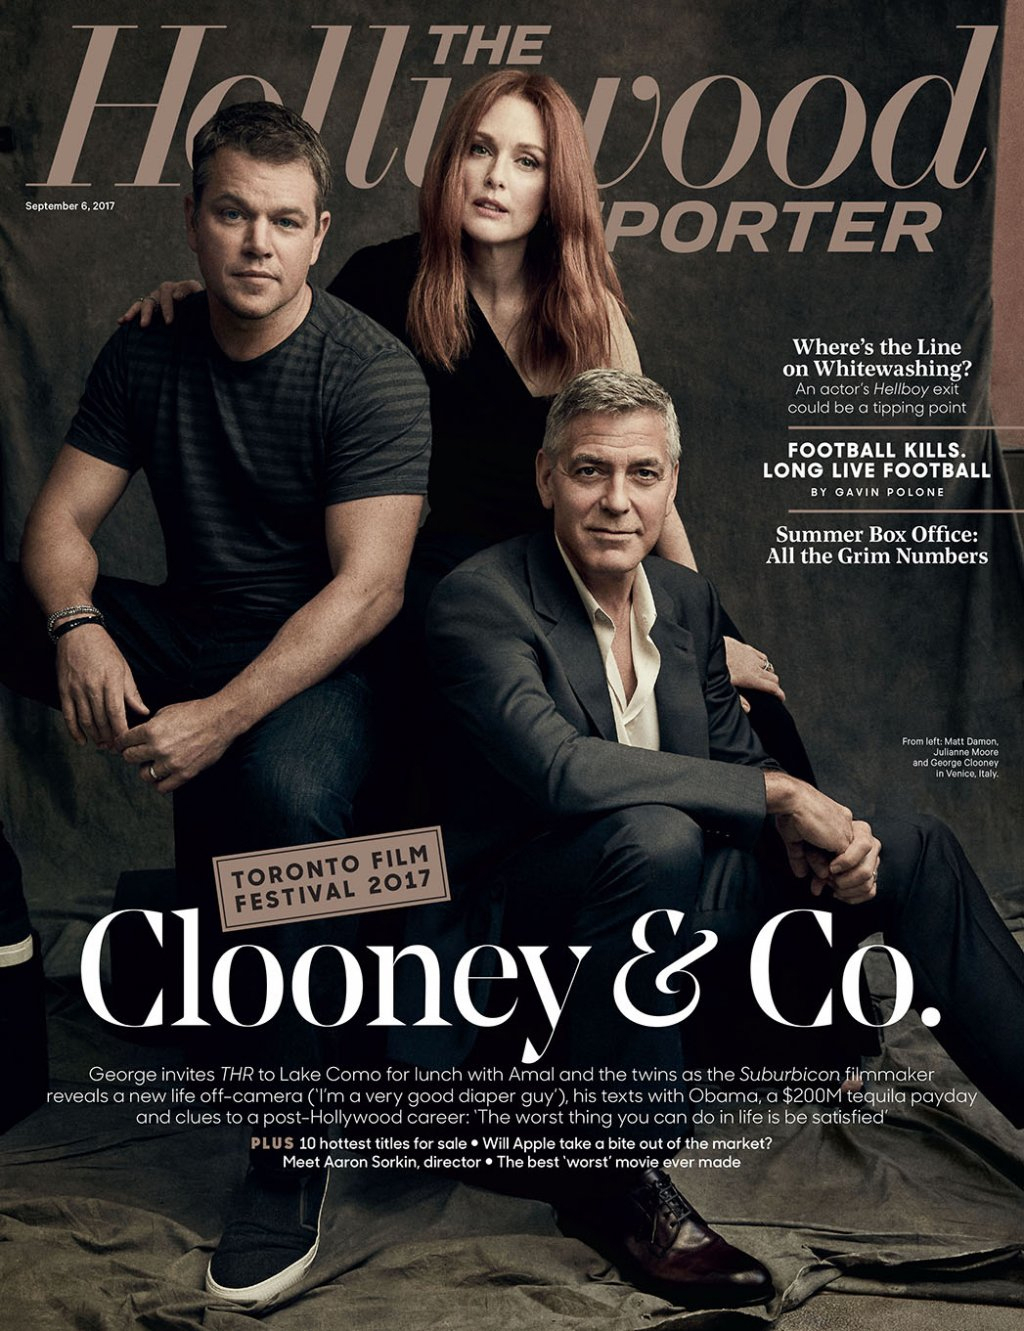 Matt Damon, Julianne Moore, and George Clooney on the cover of The Hollywood Reporter.